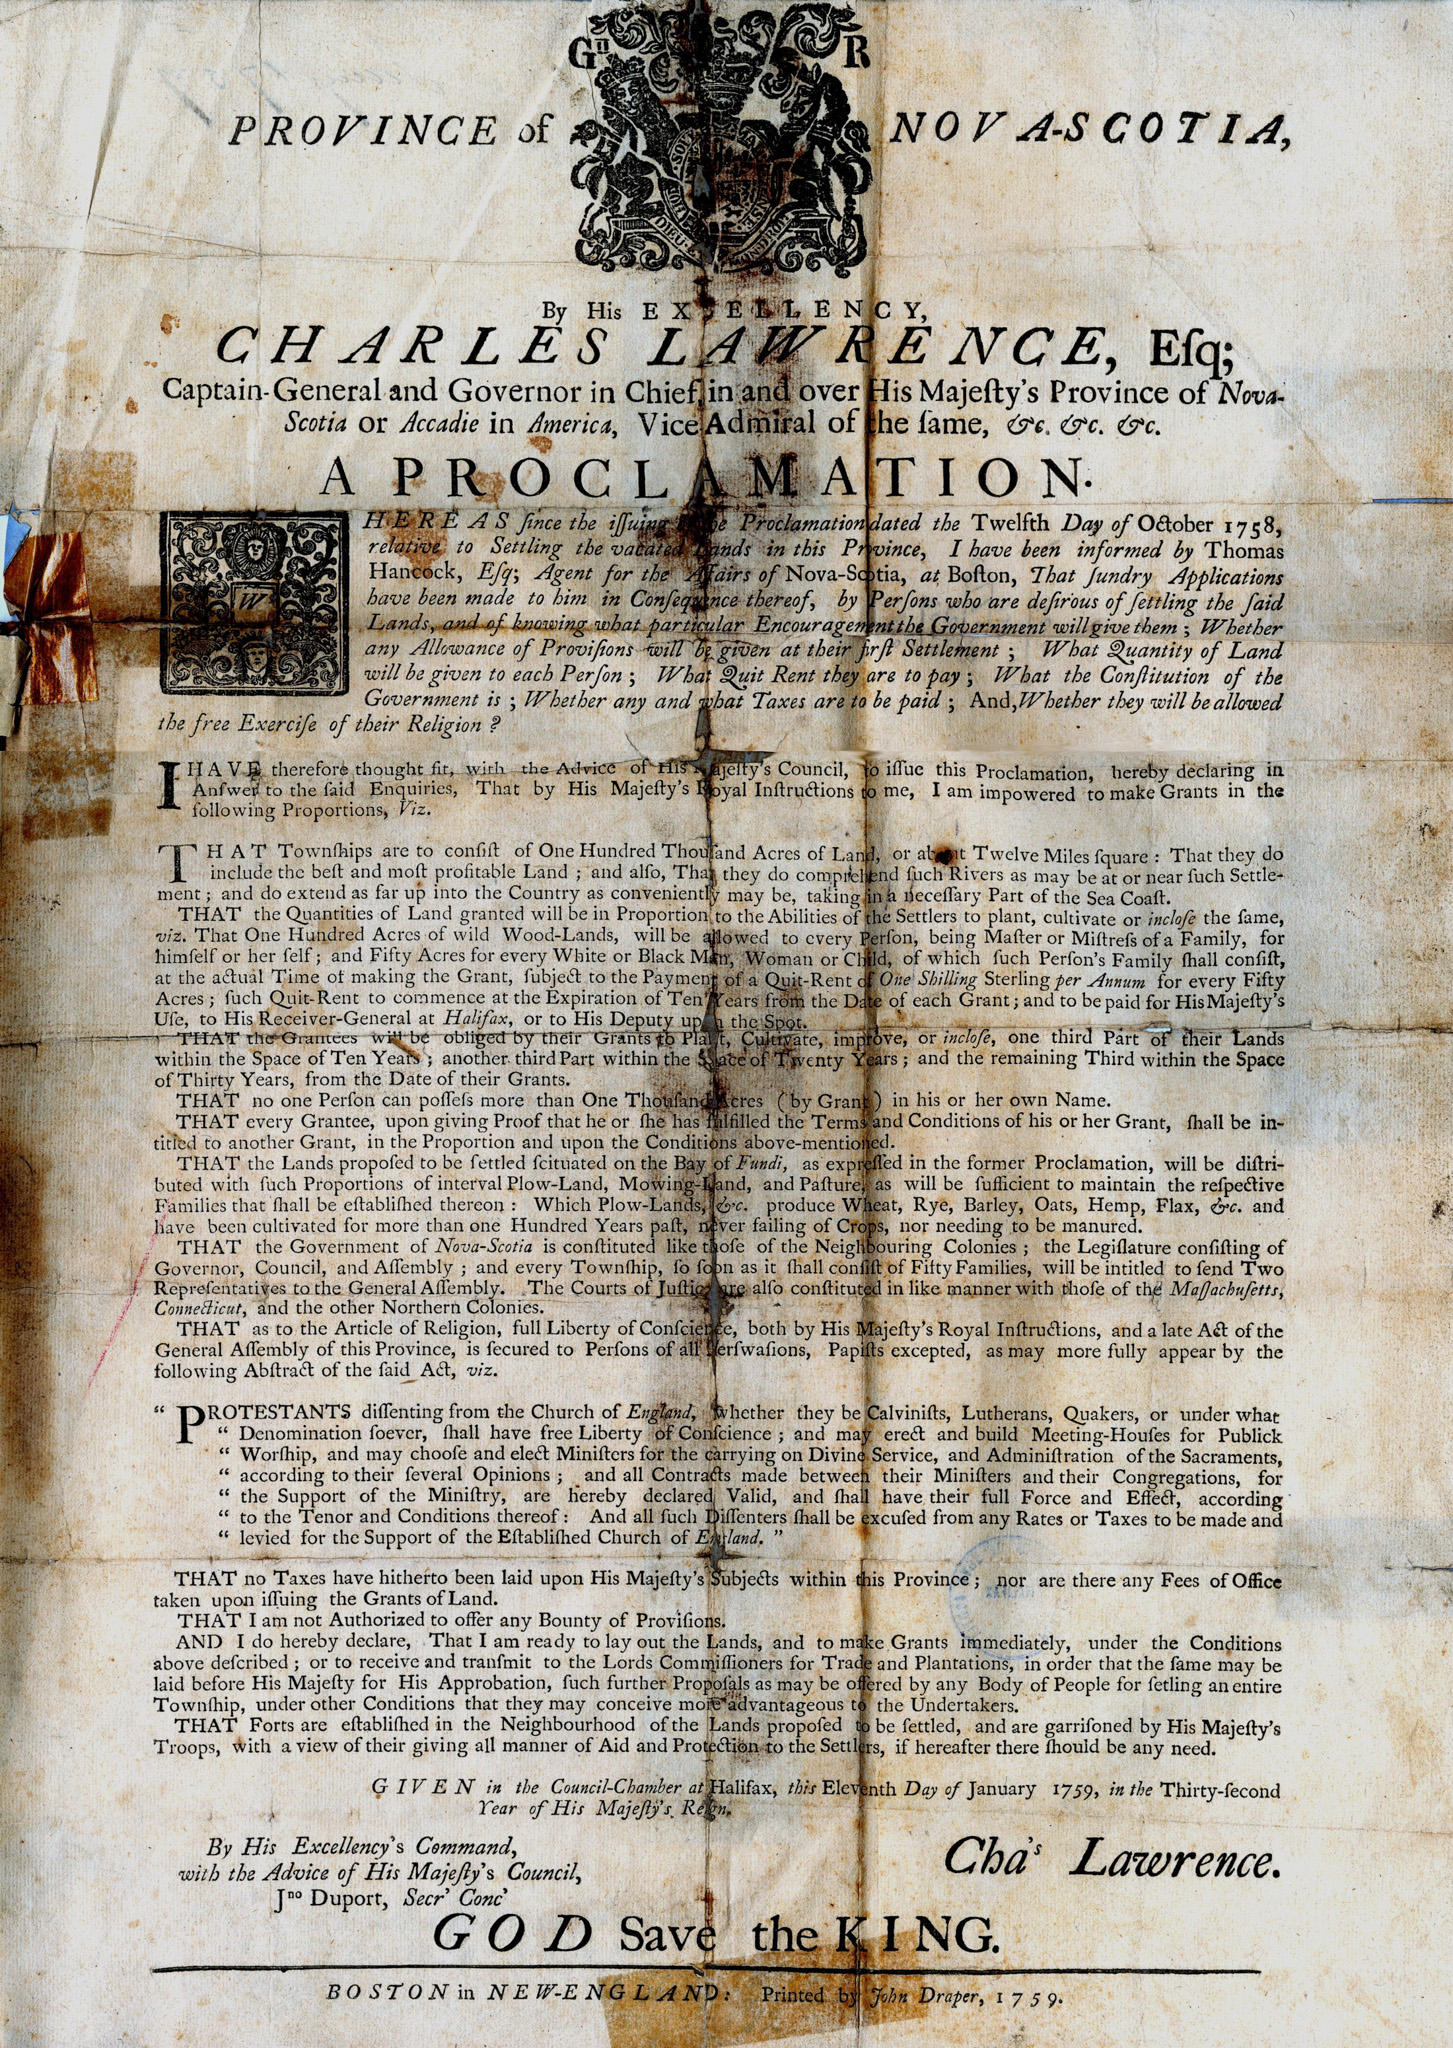 1759 Proclamation by Charles Lawrence